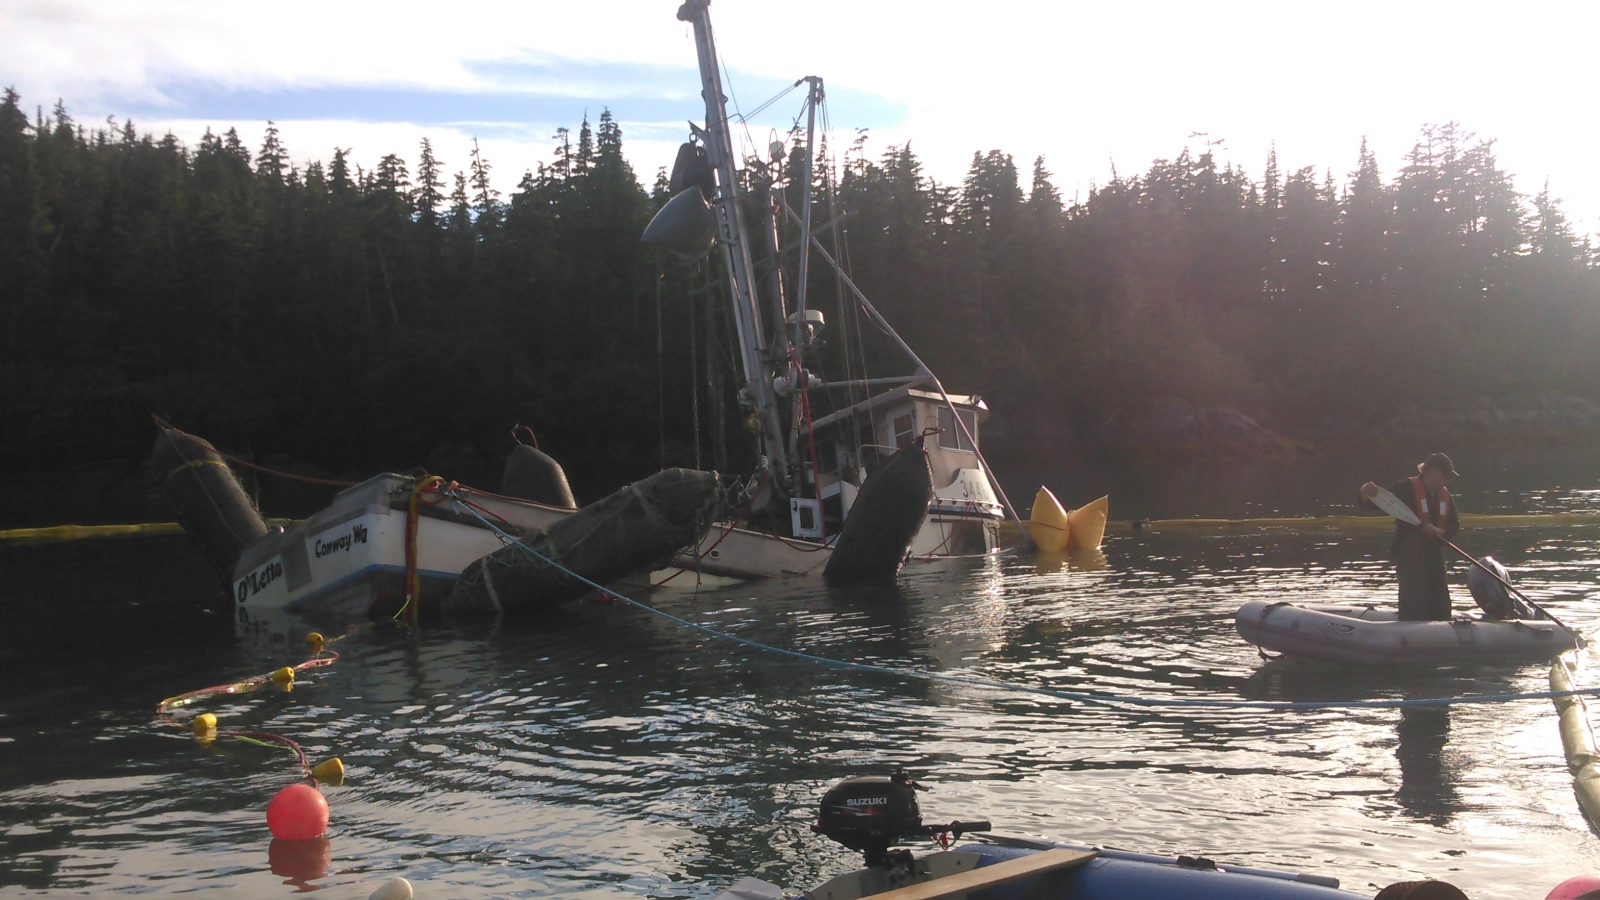 A vessel on its keel being refloated.